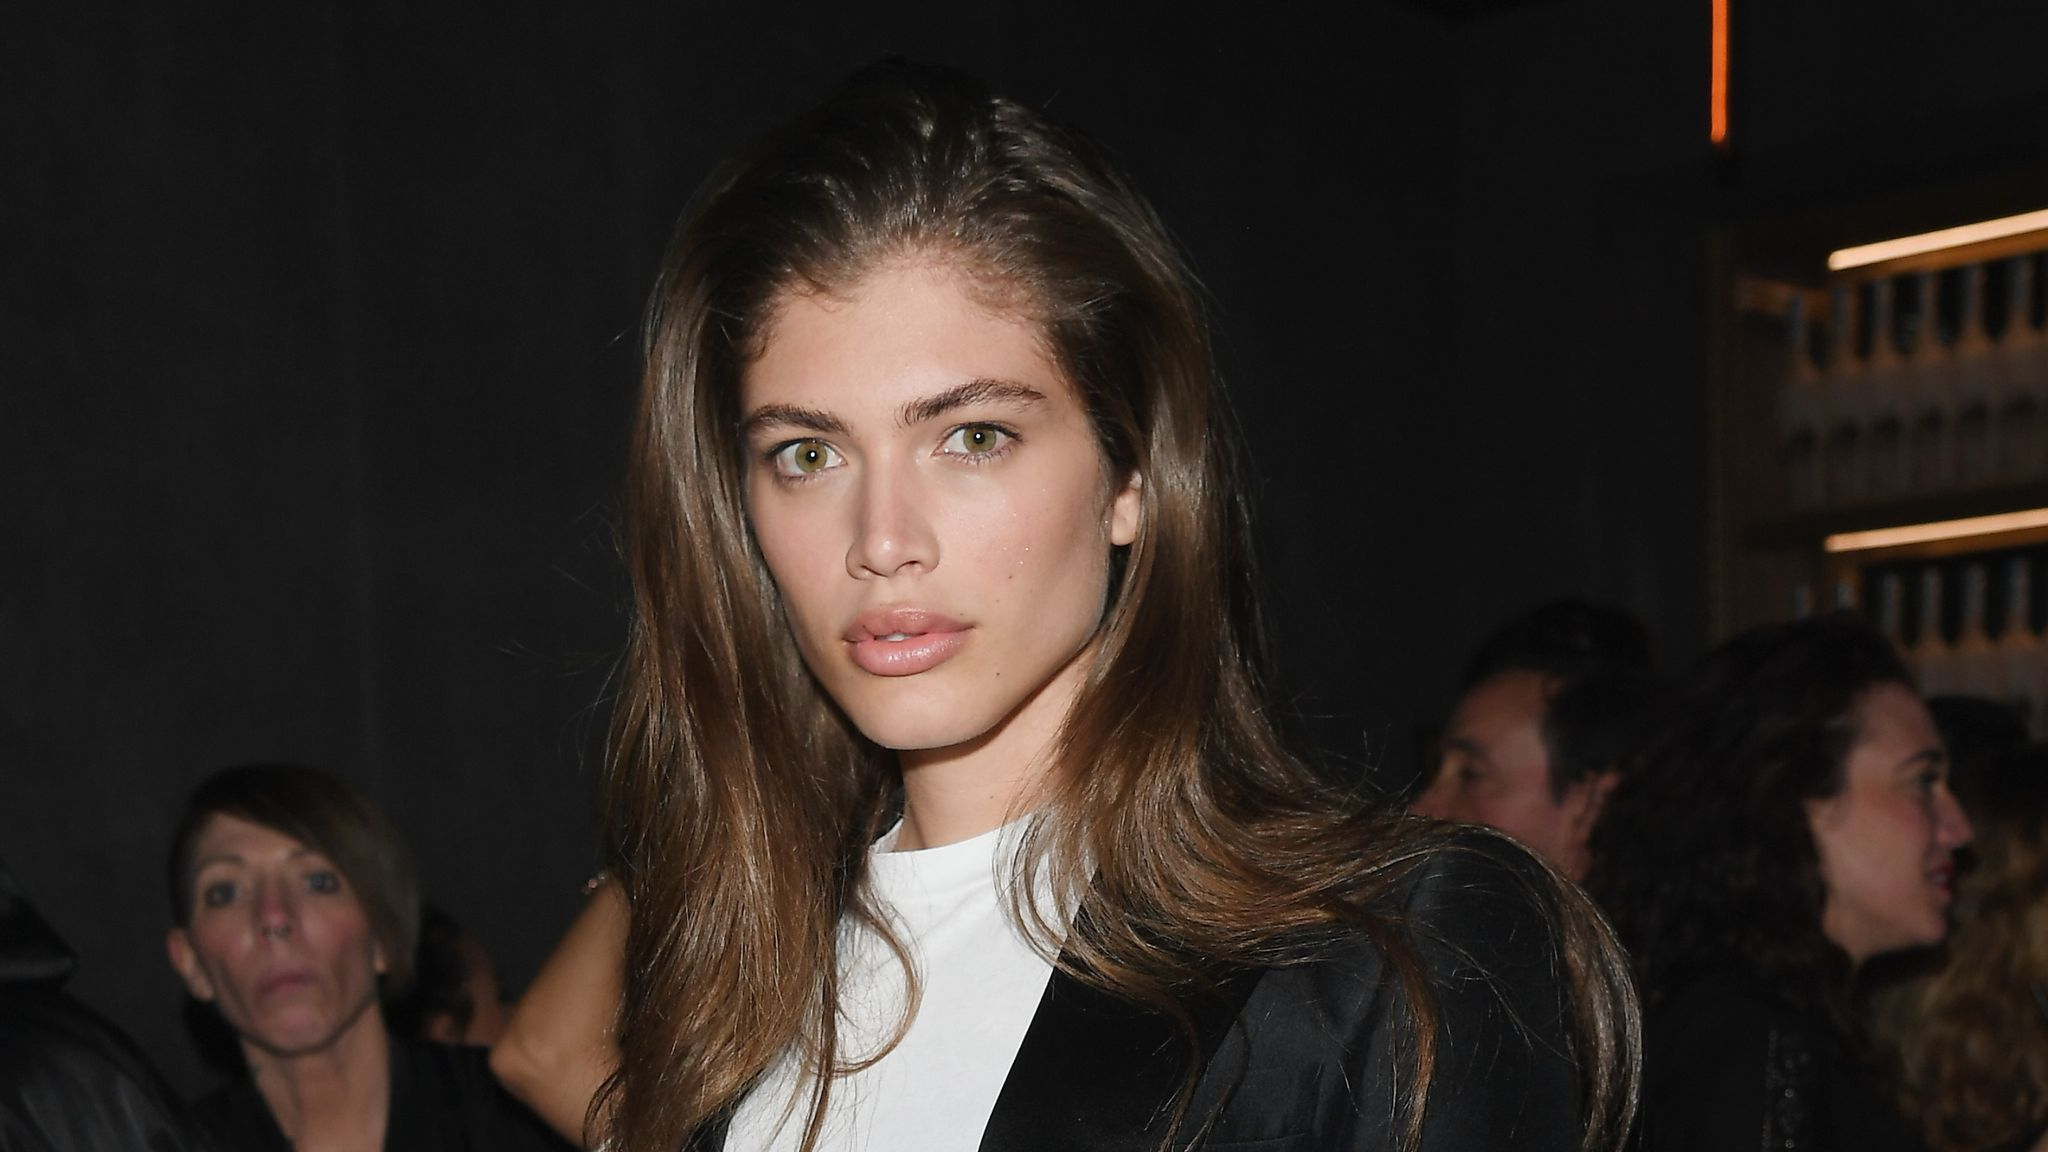 Valentina Sampaio Sports Illustrated Features First Transgender Model Ents Arts News Sky News